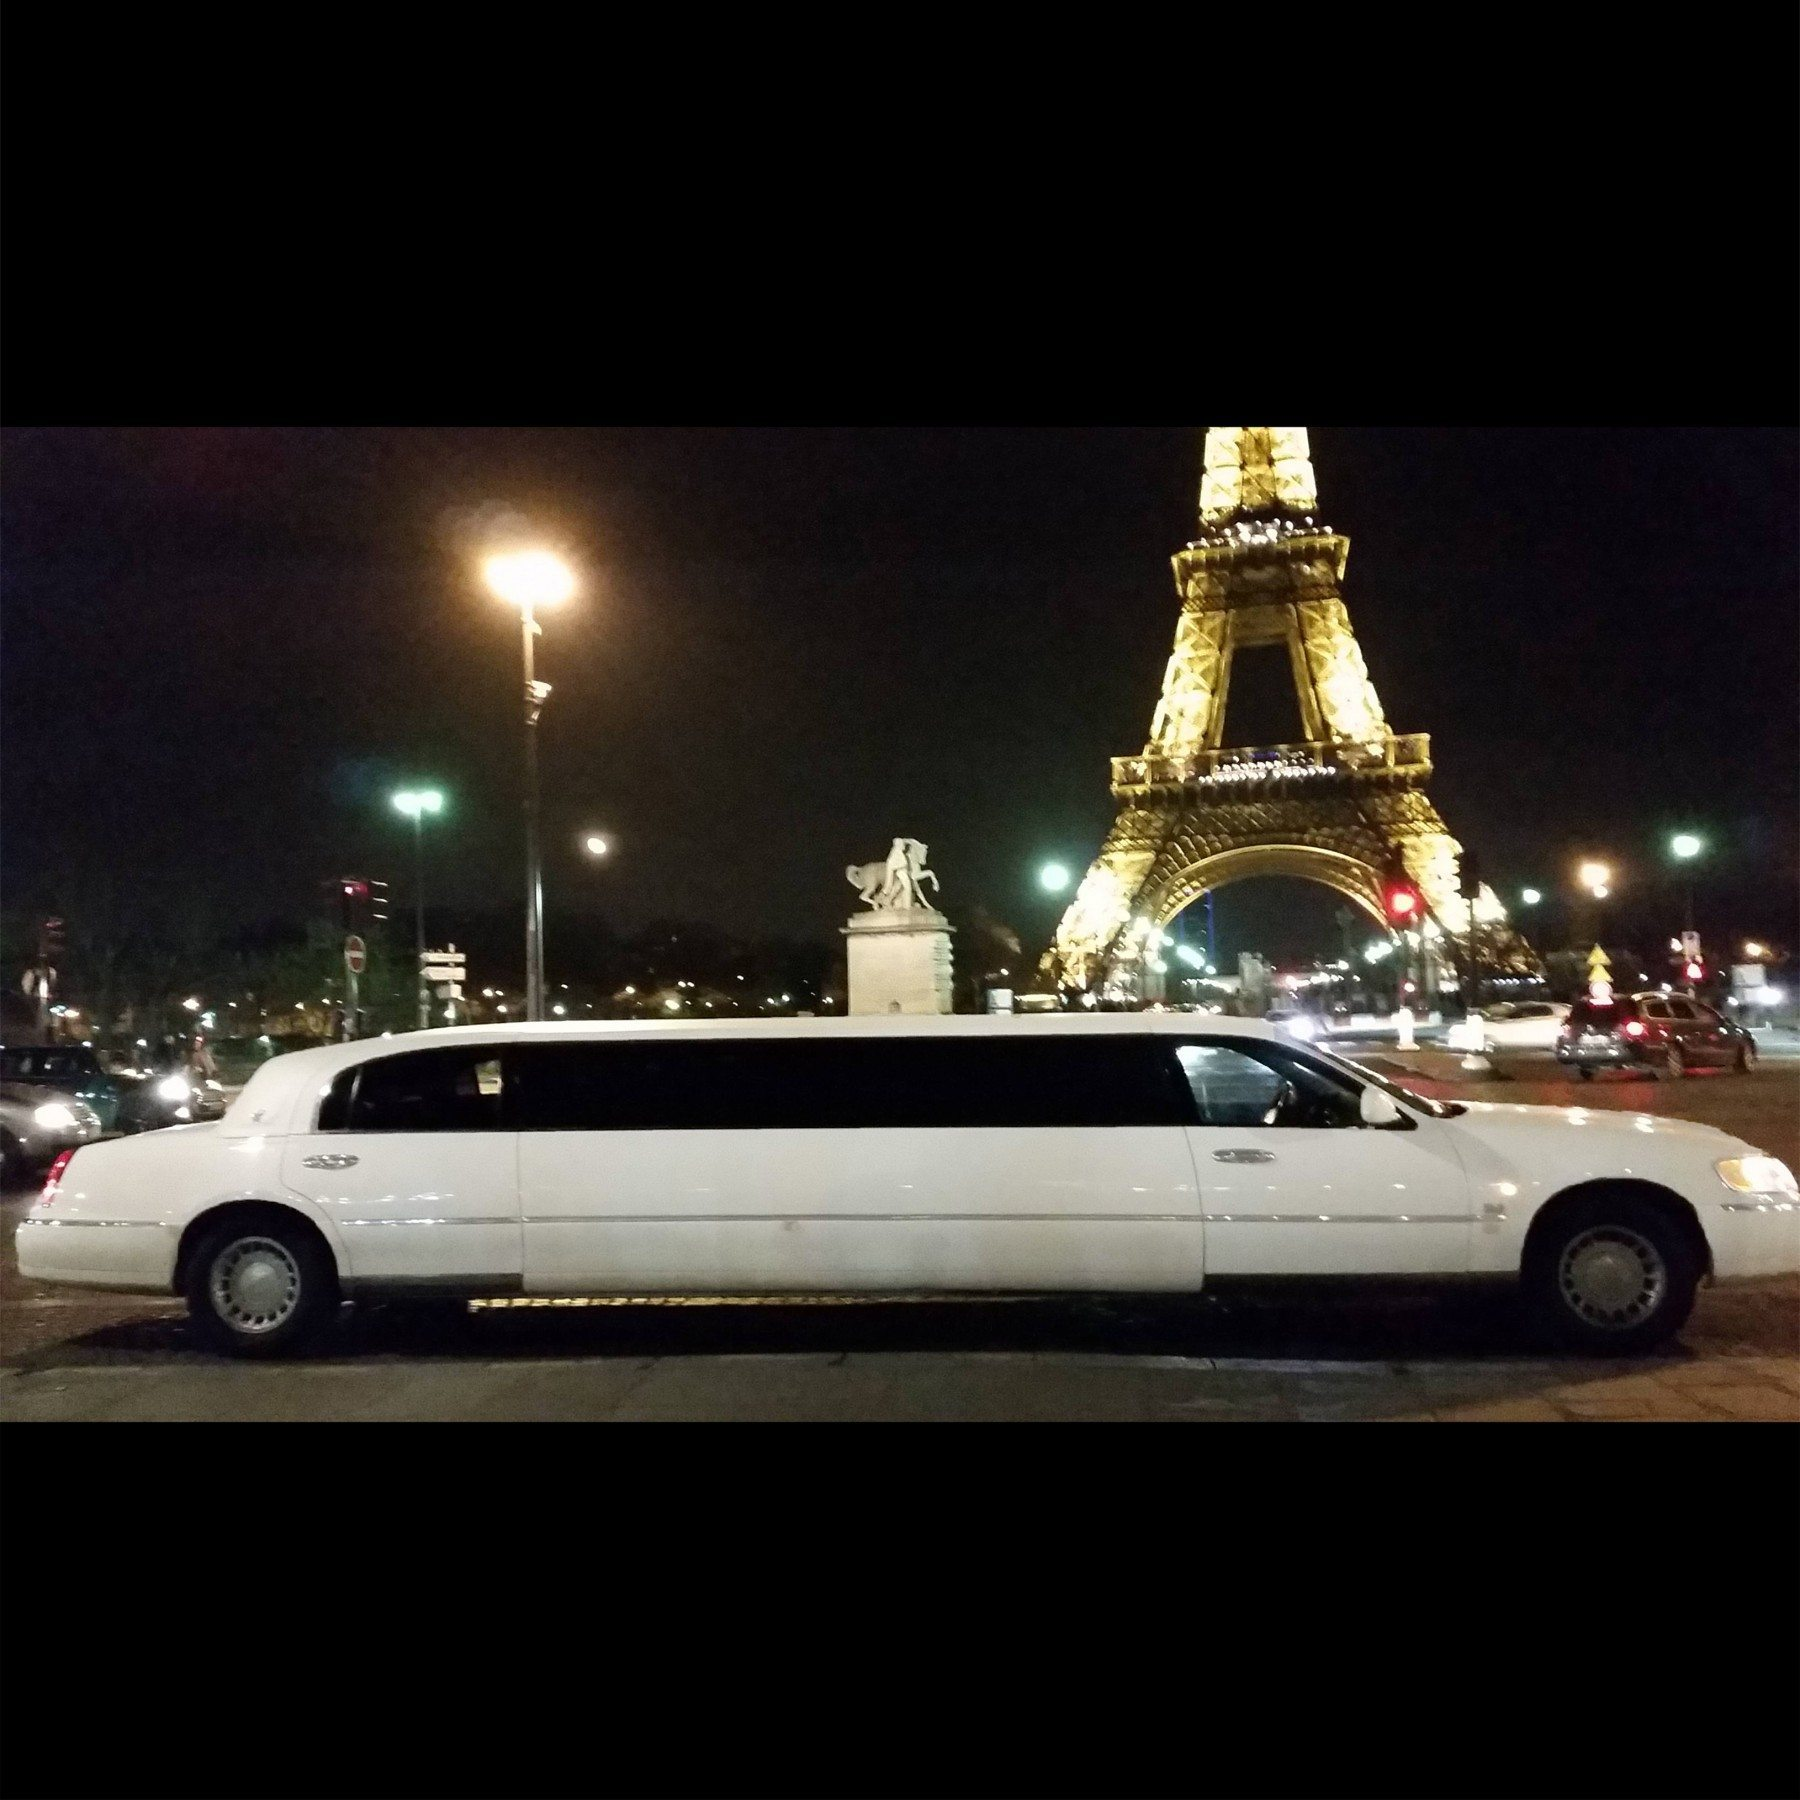 Visite de Paris d'1h30 en Limousine – Le parcours traditionnel